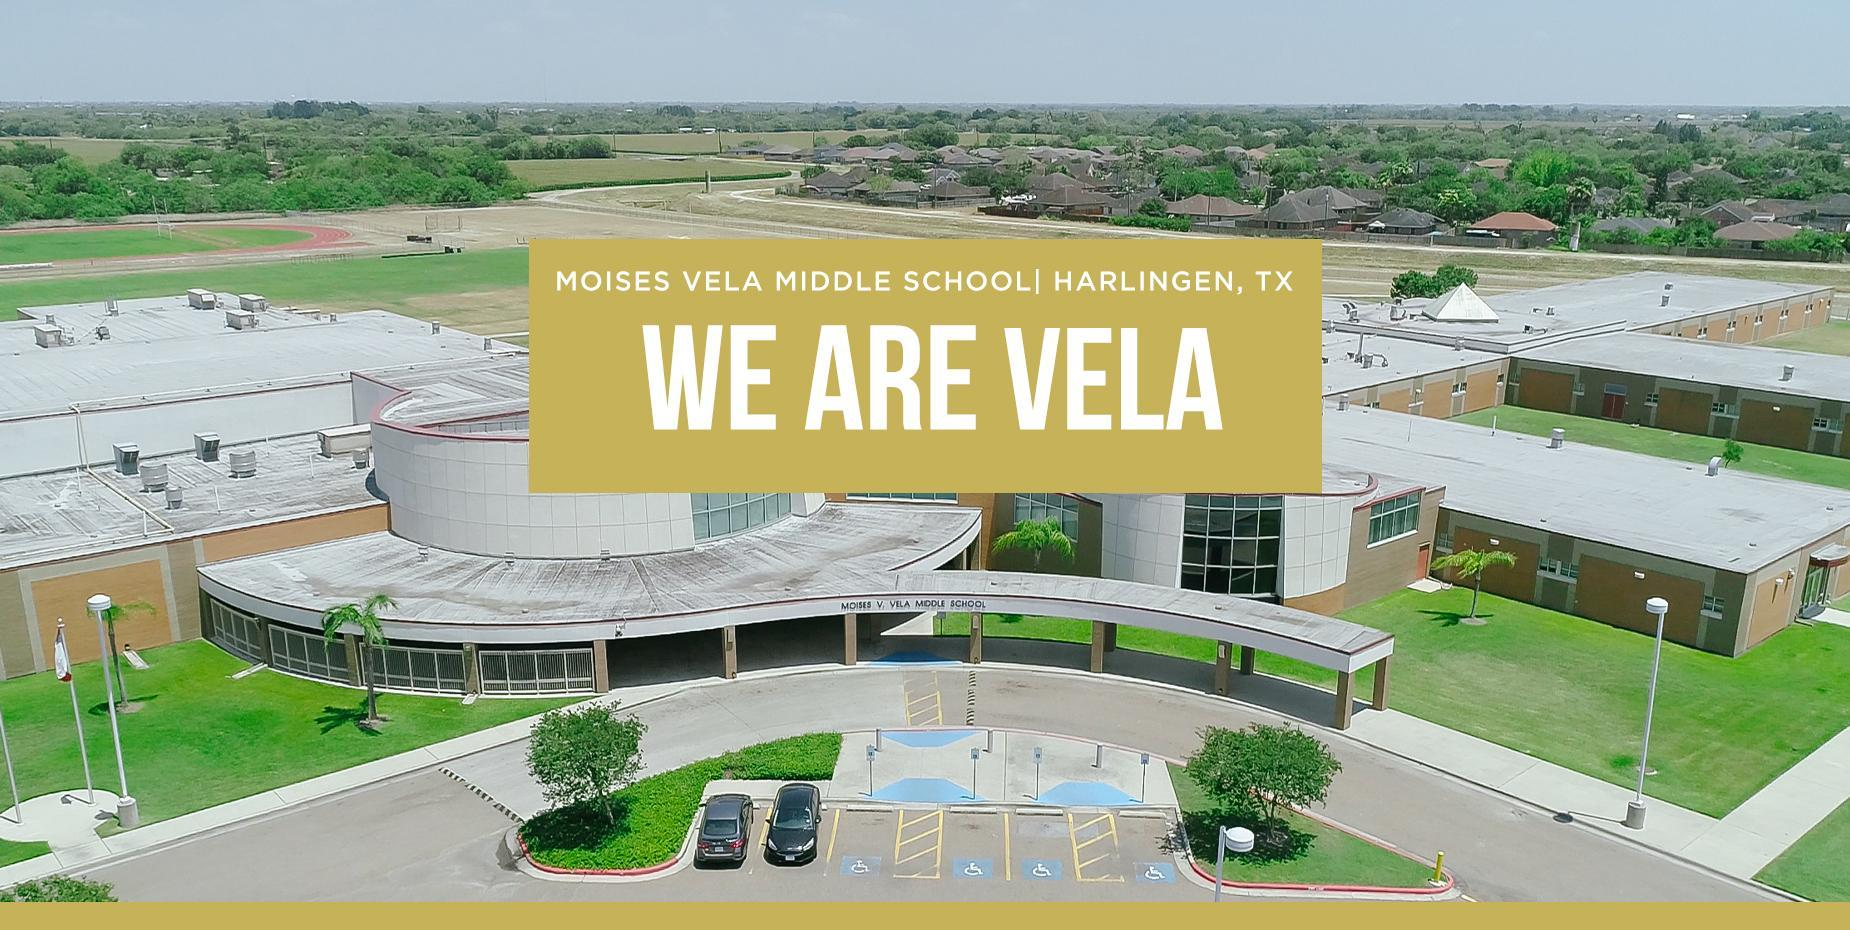 Aerial photo of Vela Middle School with